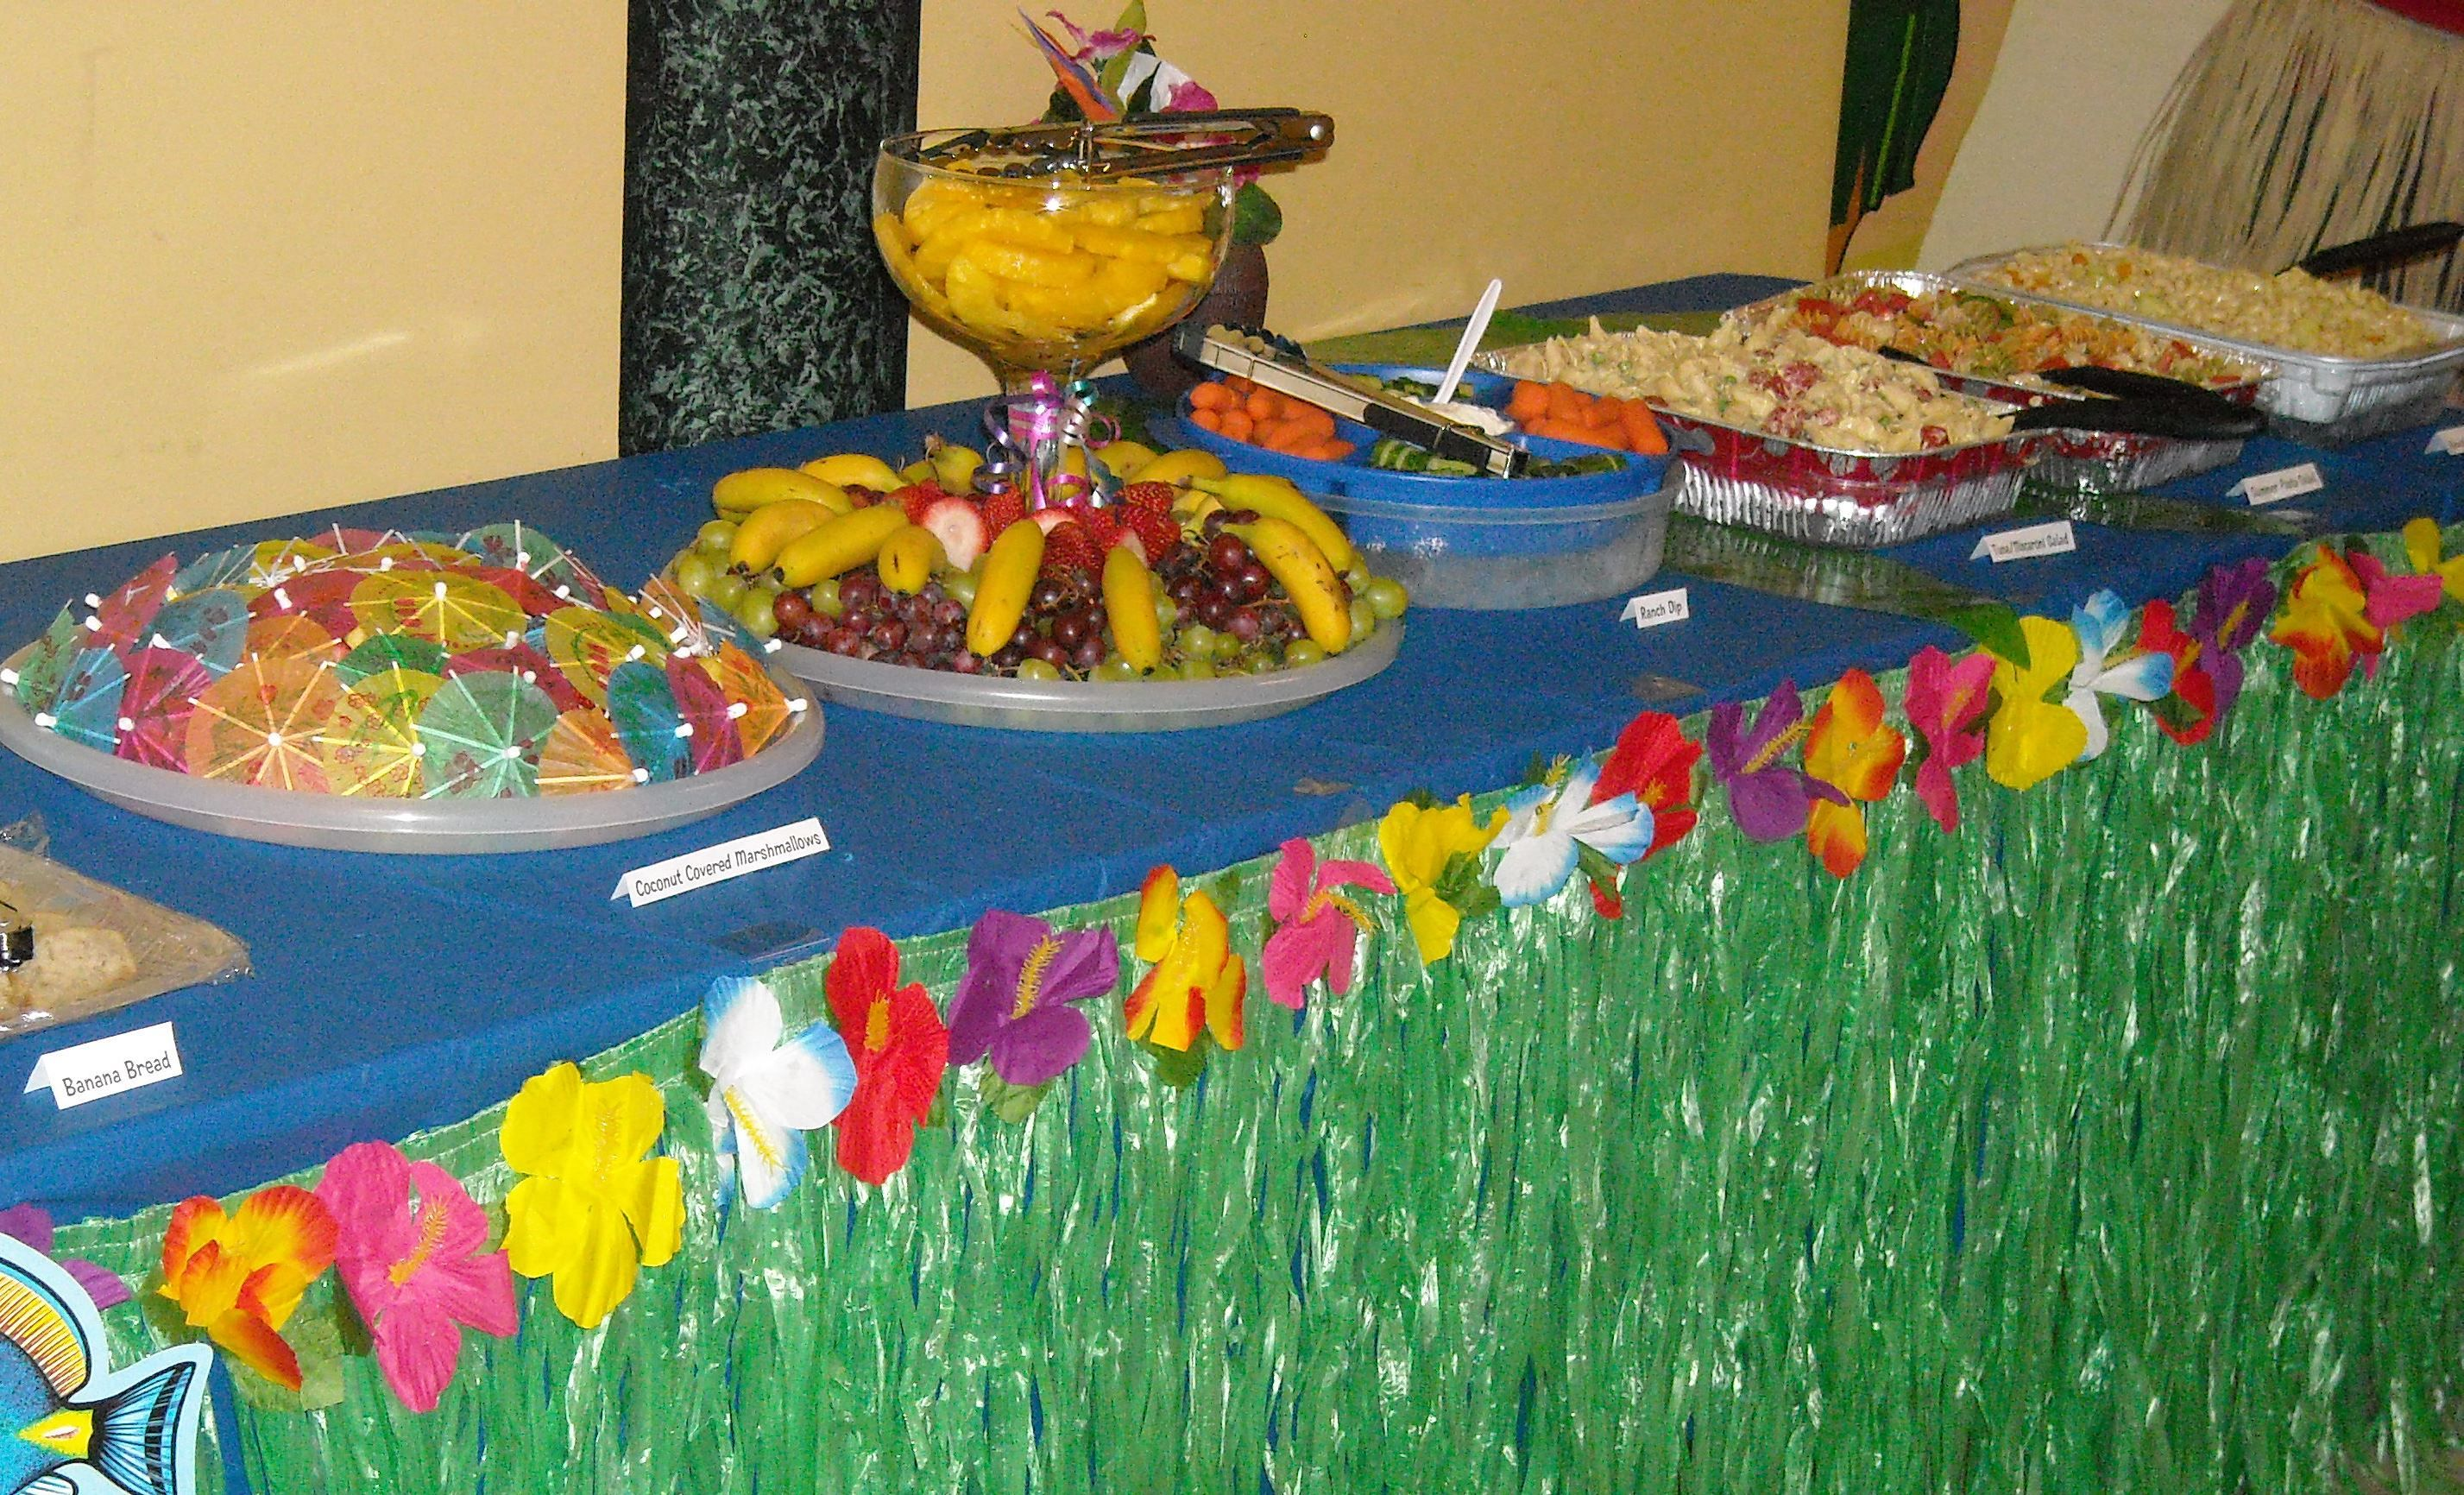 Luau party ideas be organized make lists for needed for Hawaiin decorations